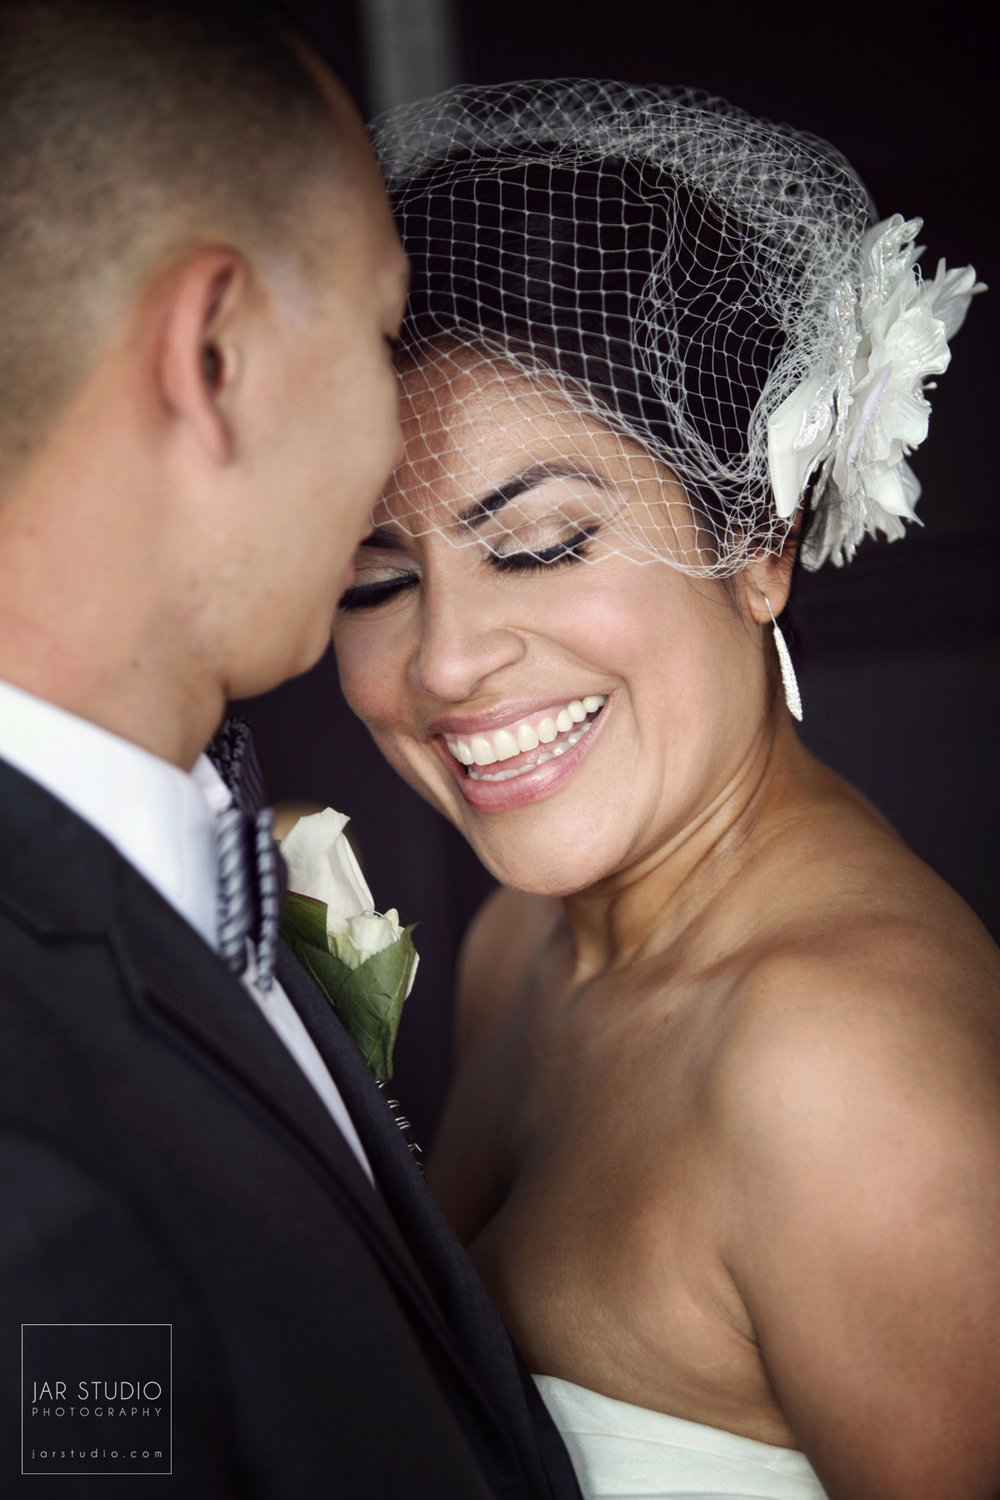 19-happy-bride-beautiful-photography-jarstudio-orlando.JPG